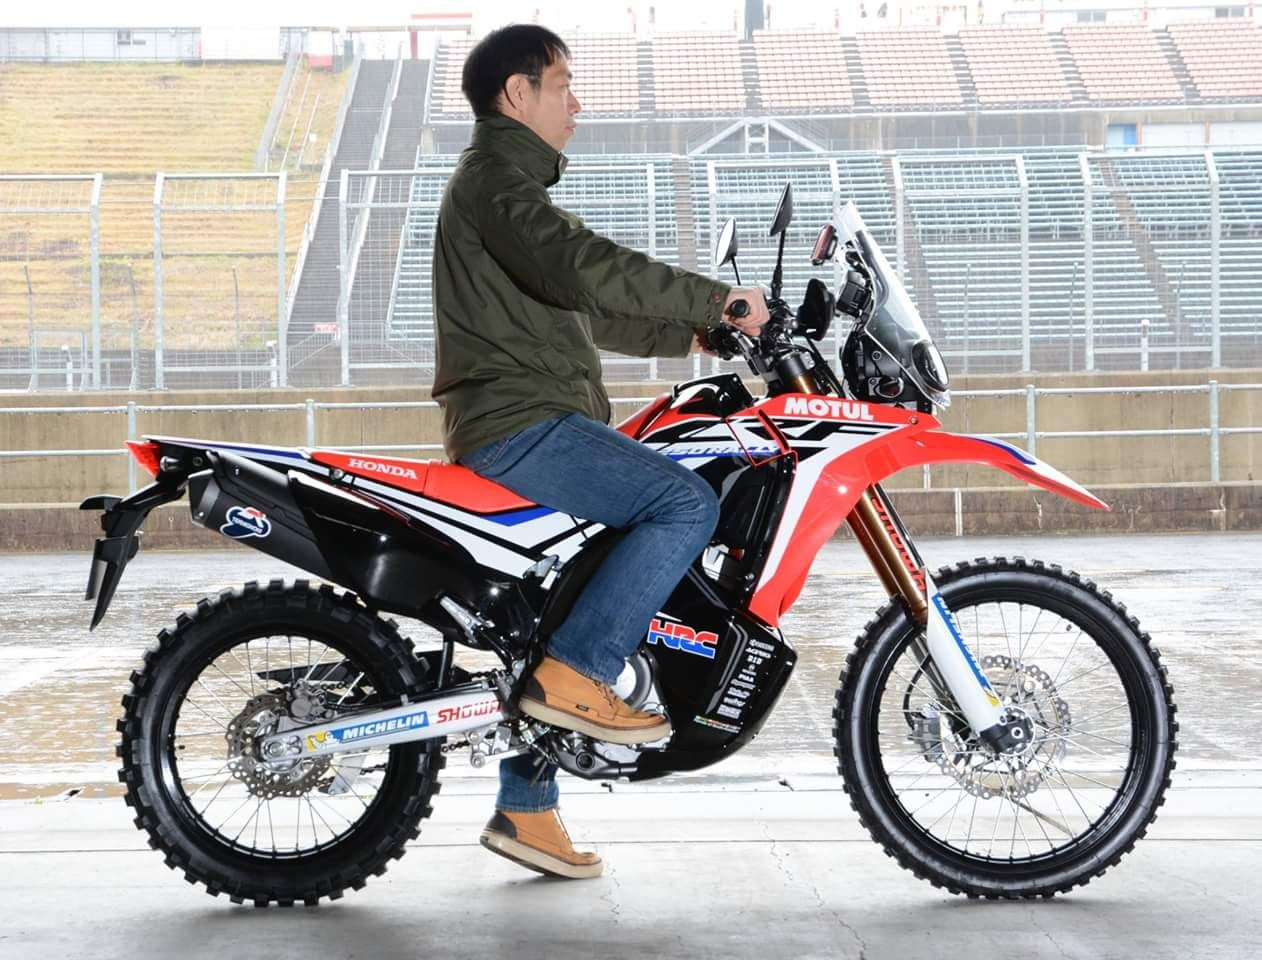 honda crf 250 rally page 4 adventure rider motioooo pinterest rally honda and honda s. Black Bedroom Furniture Sets. Home Design Ideas